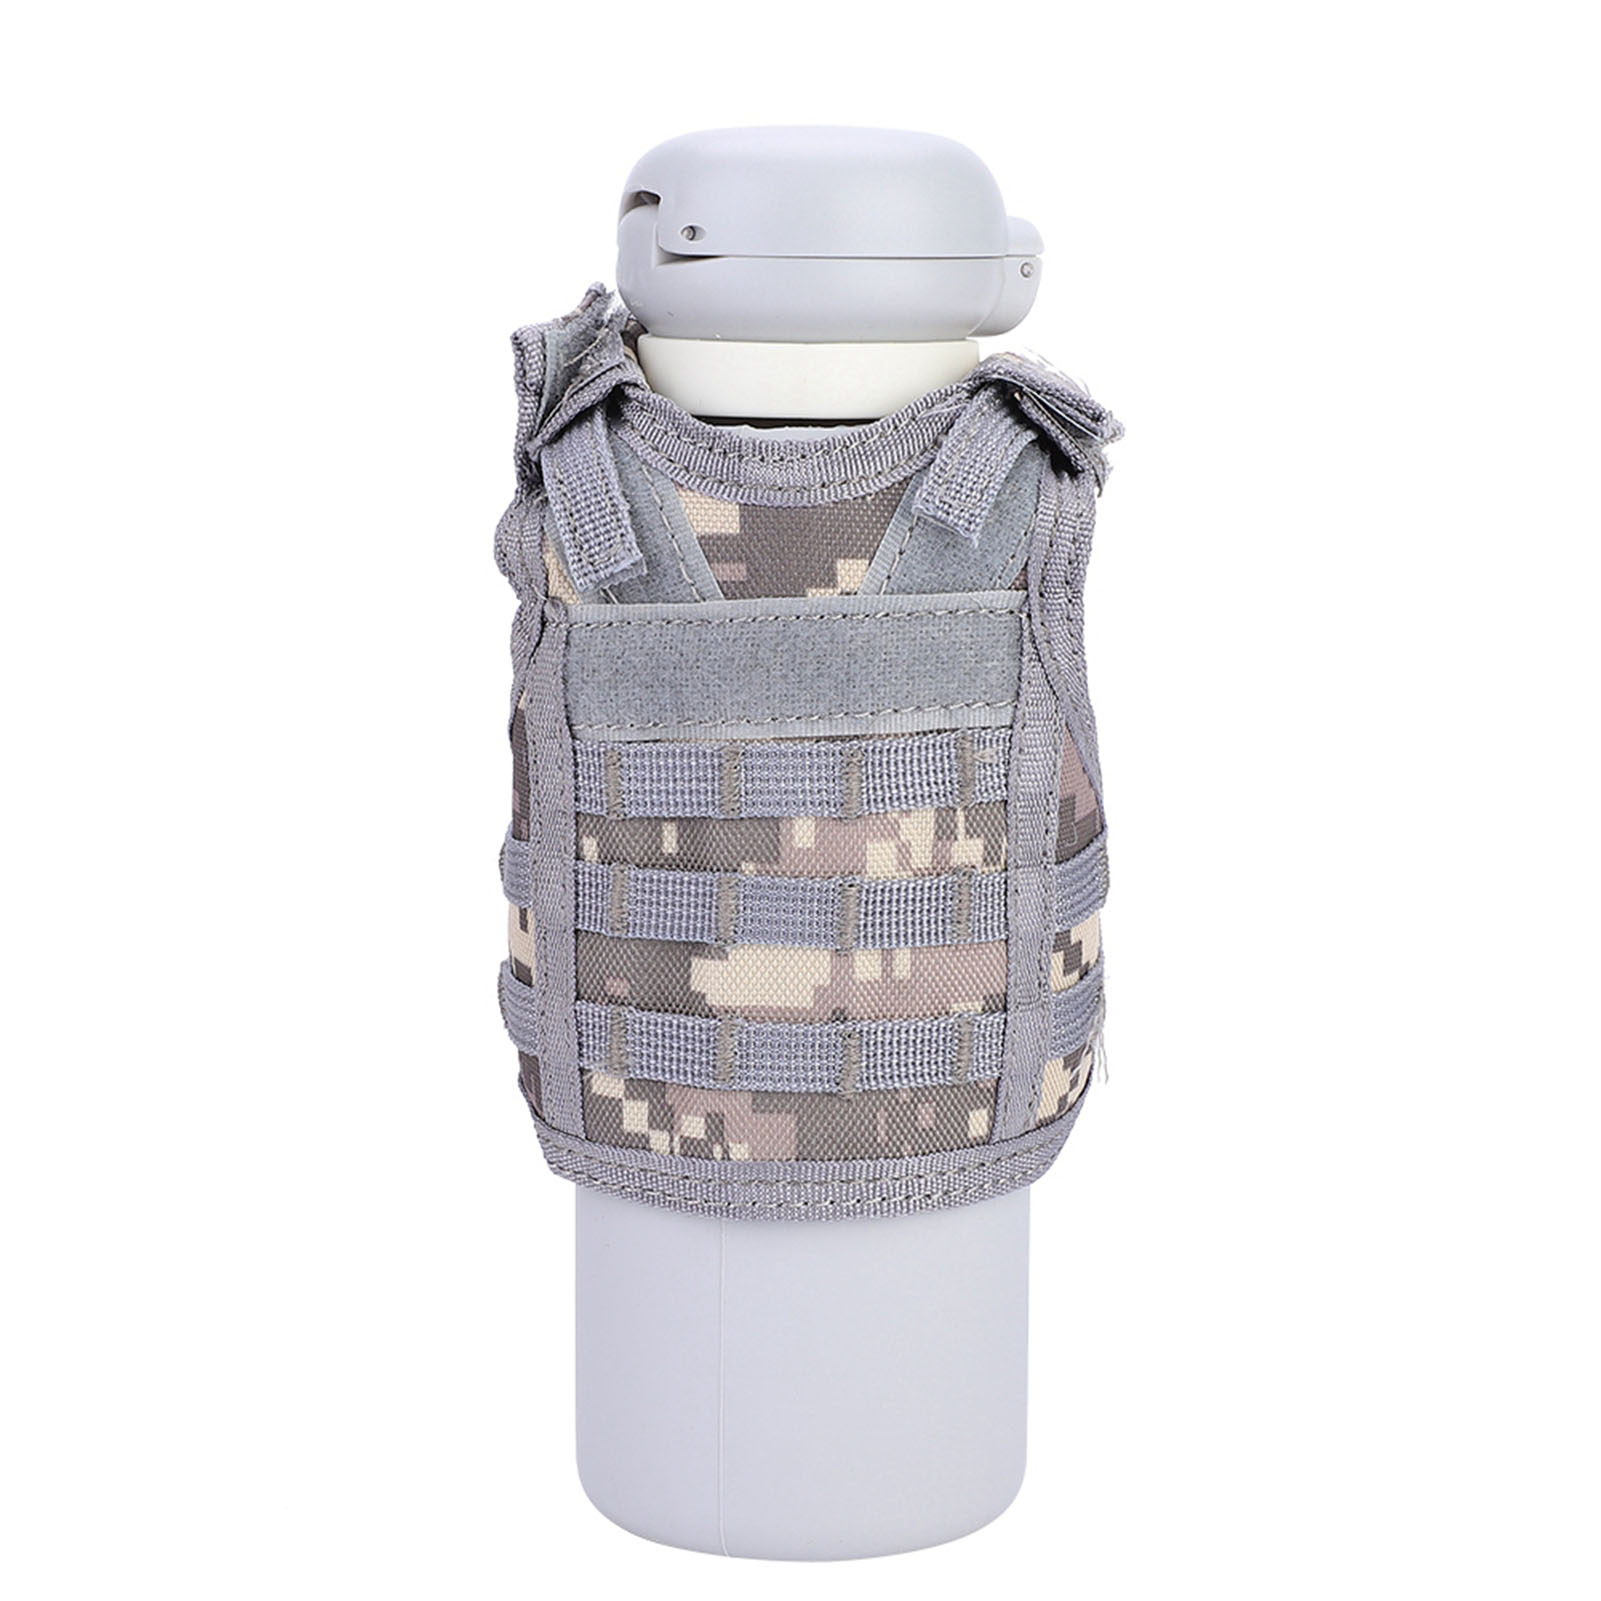 Mini-Military-Tactic-Beer-Water-Bottle-Can-Vest-Carrier-Holder-Beverage-Cover thumbnail 25